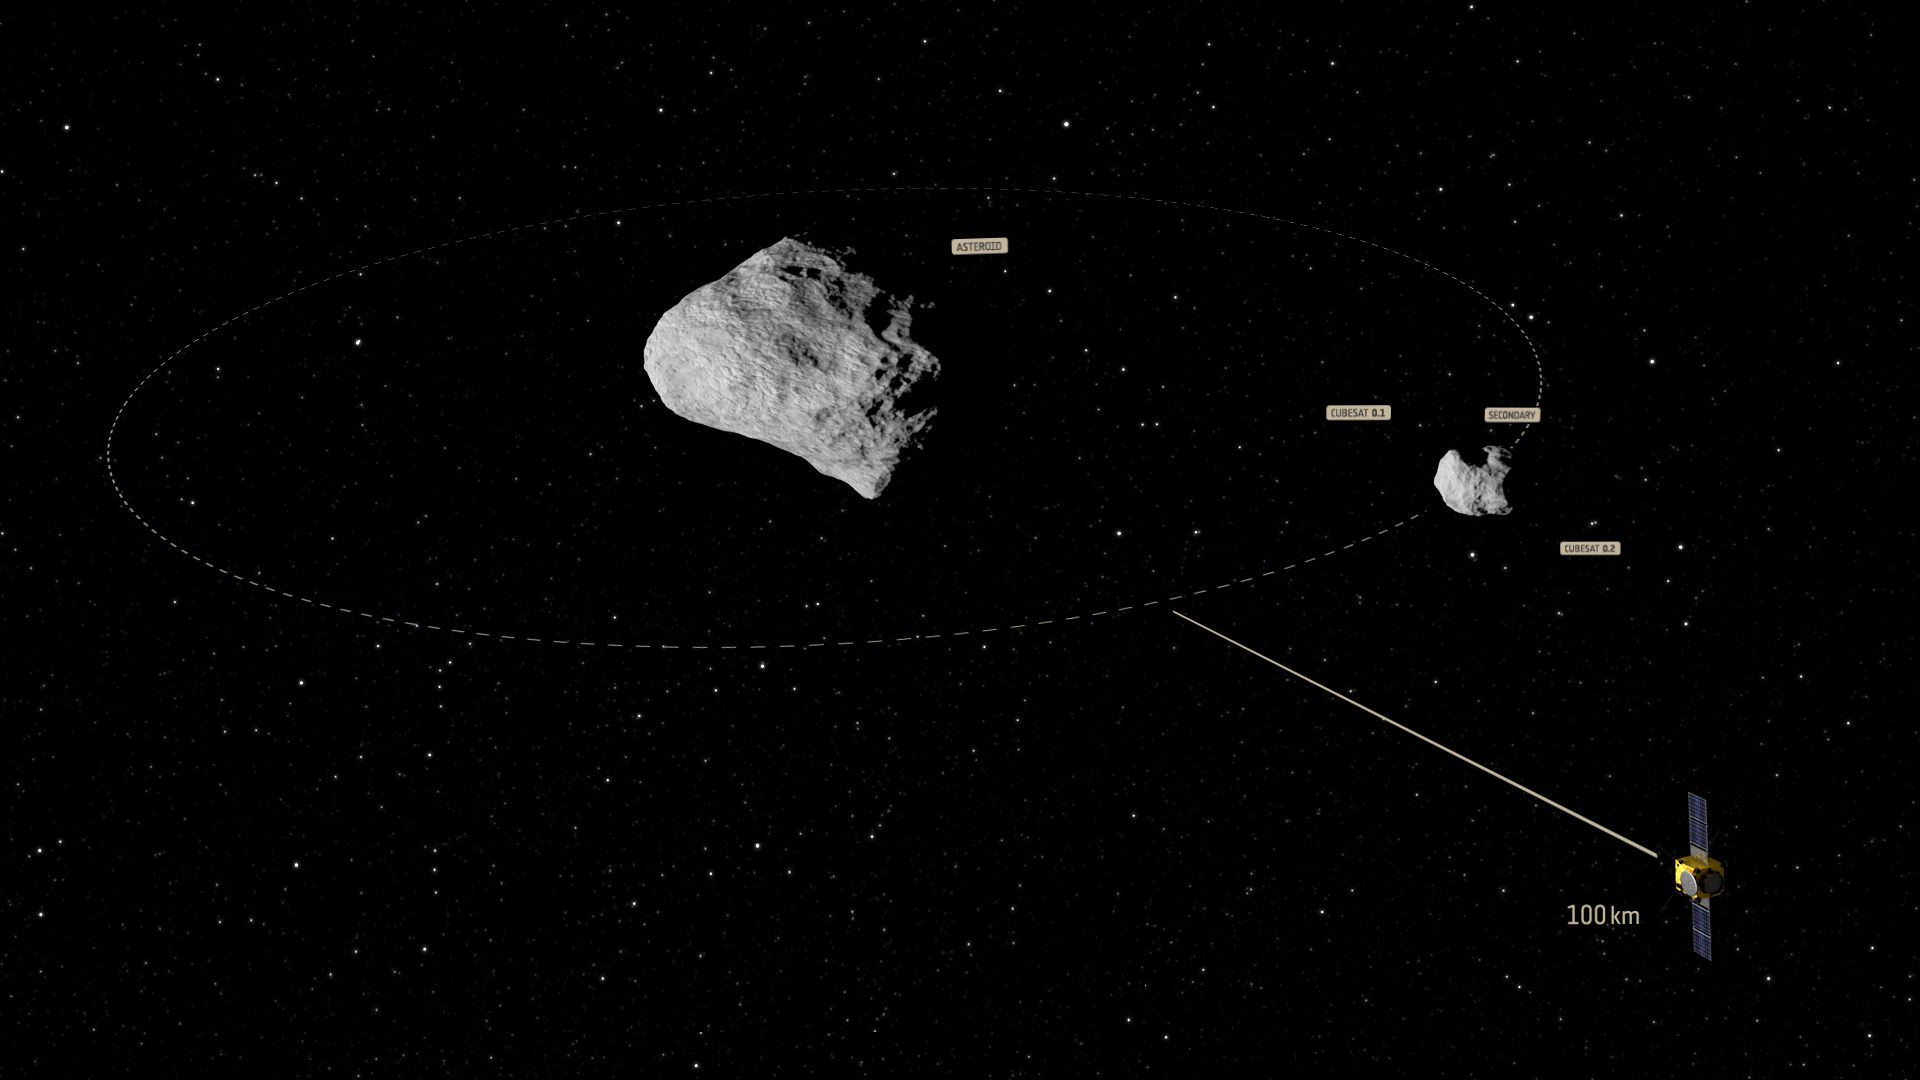 asteroid in space blowing up - photo #44